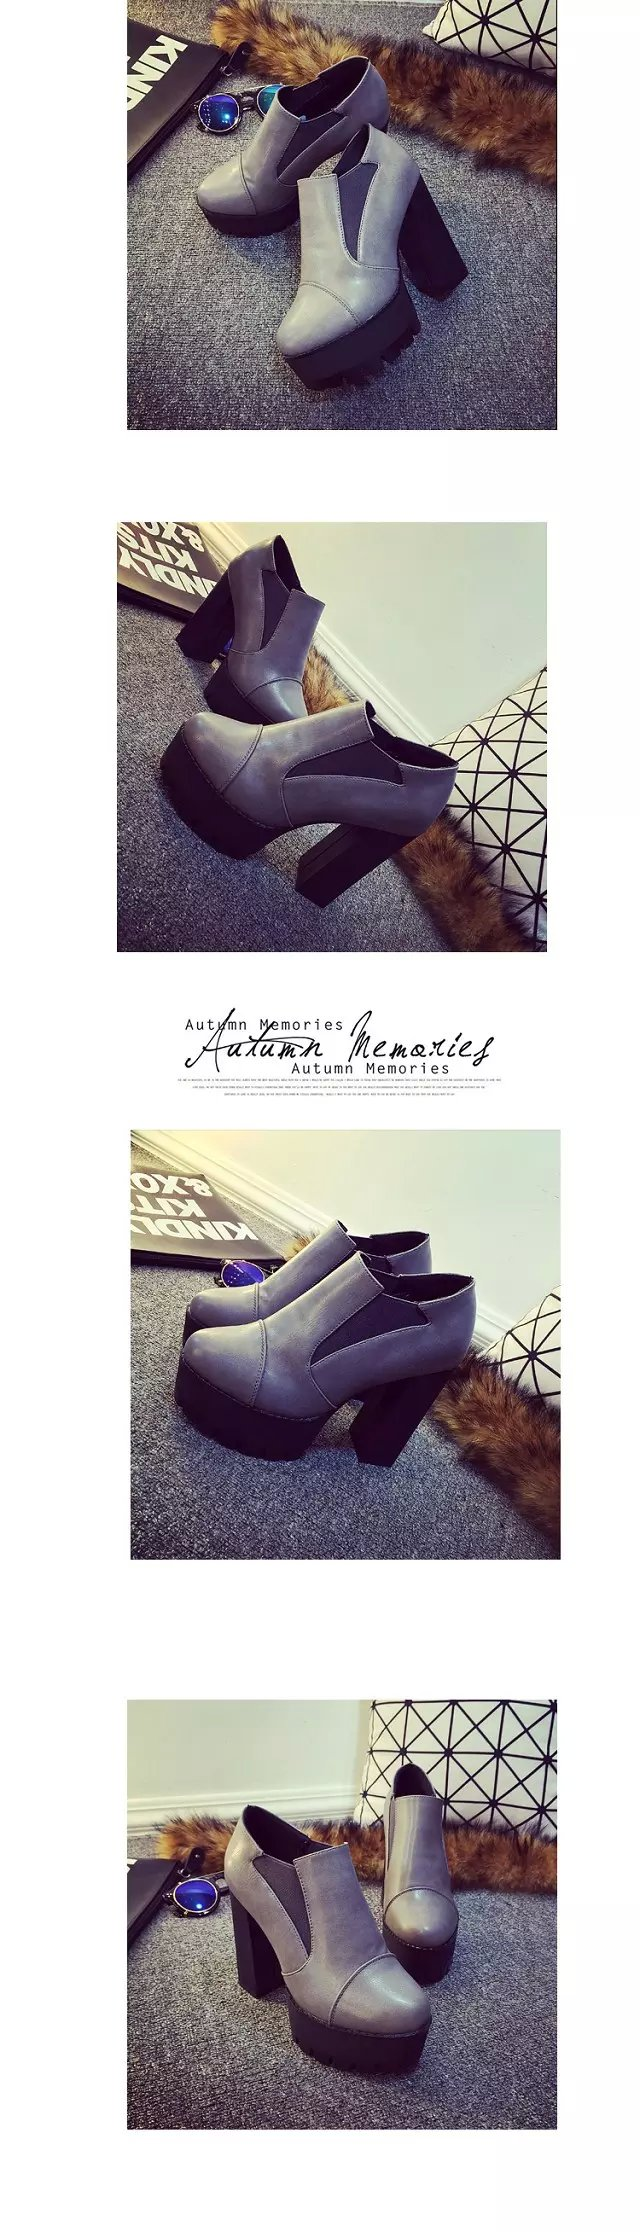 [H][C]2017 women's Shoes  Boots high-heeled Shoes Platform Shoes Thick Heels Shoes High Heel Pumps For Girls  .DFGD-99-1